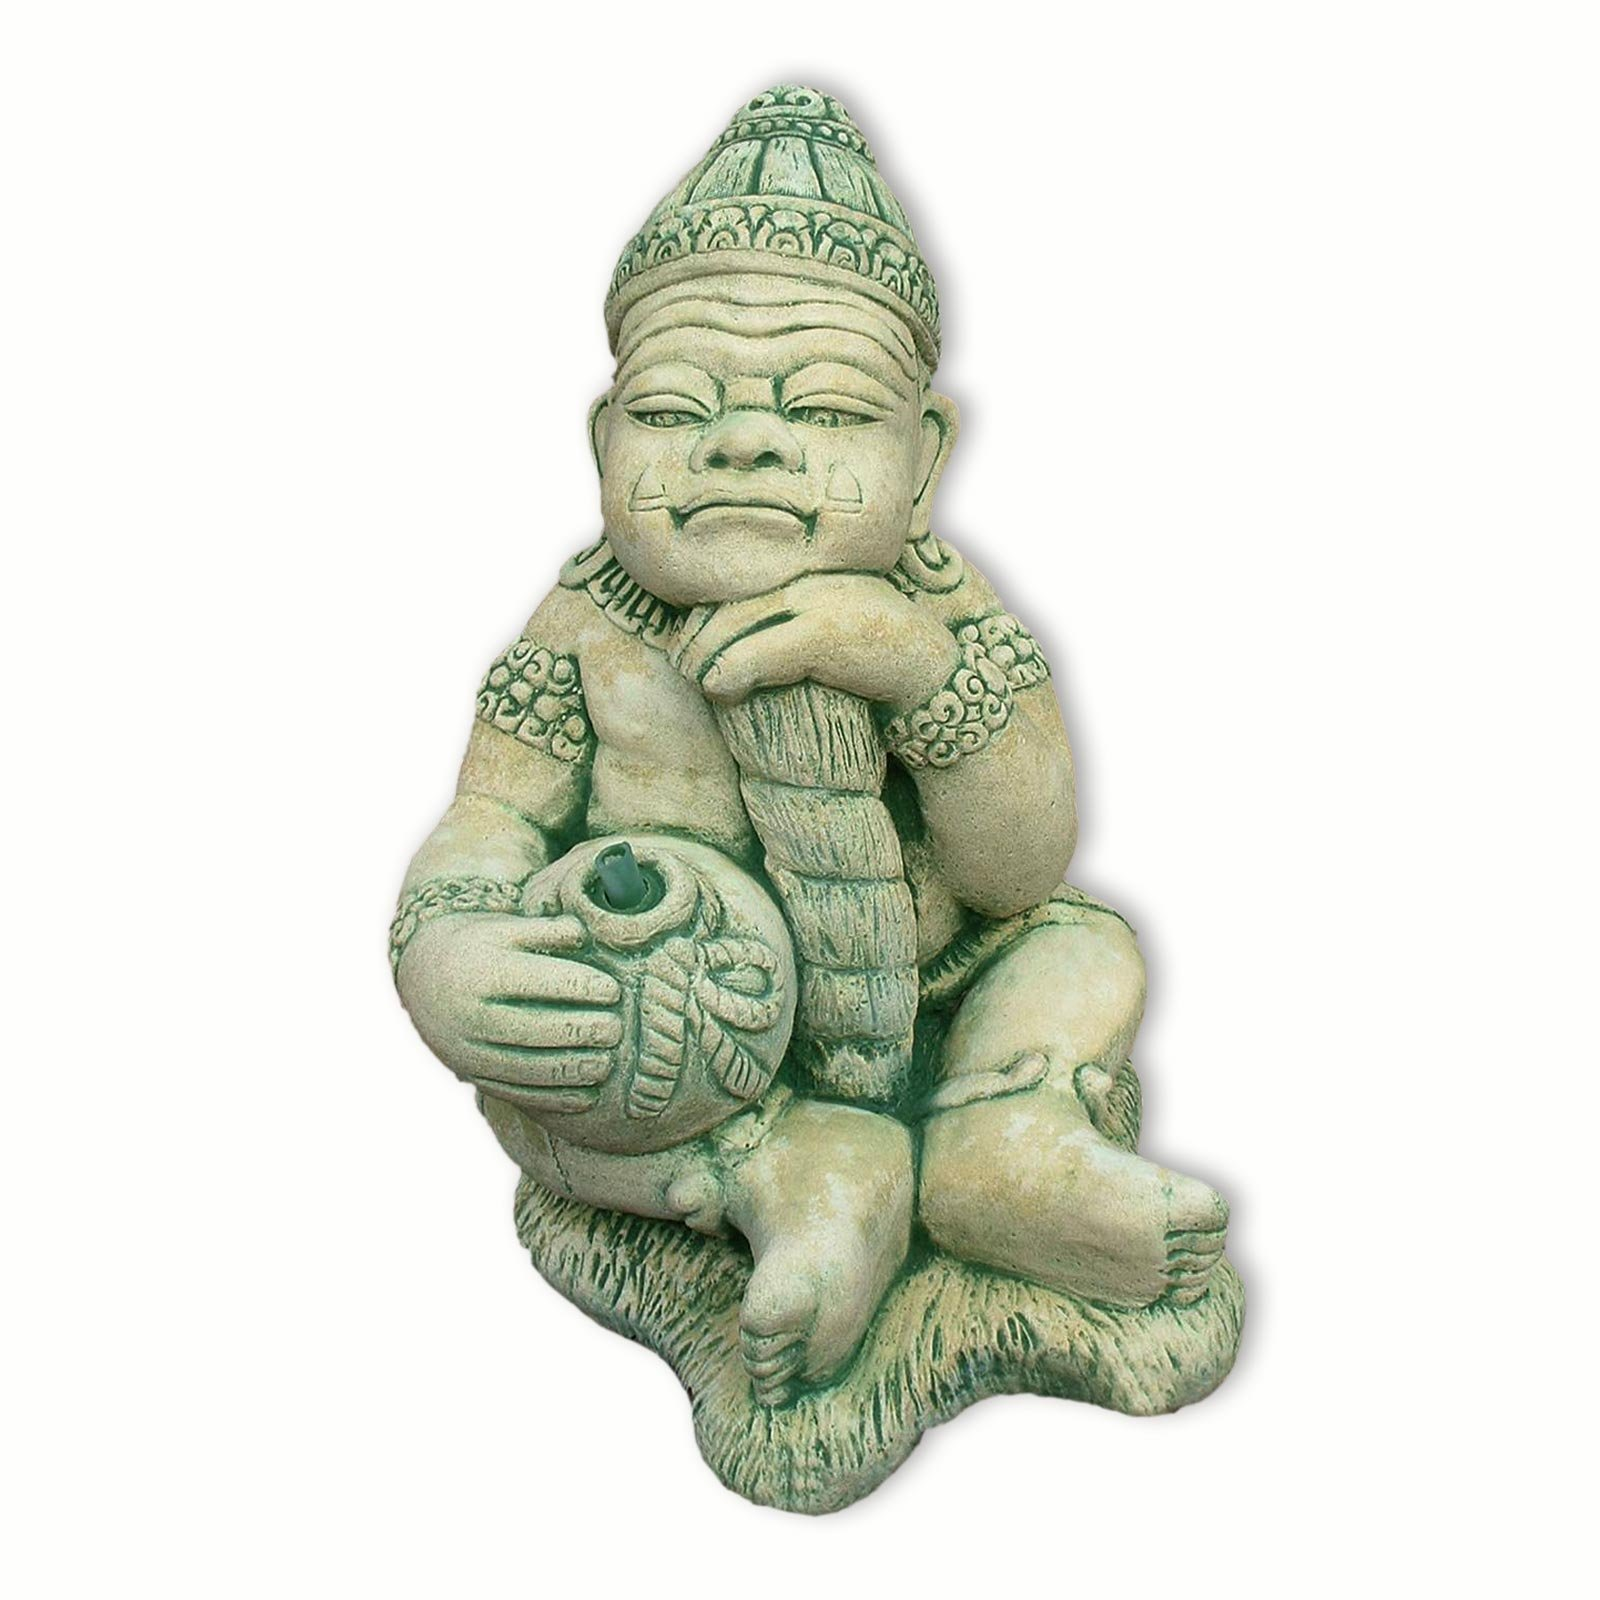 Thai guardian sitting, fountain, water shoot, sandstone, imported from Thailand, yellow/green (10232) by 10232